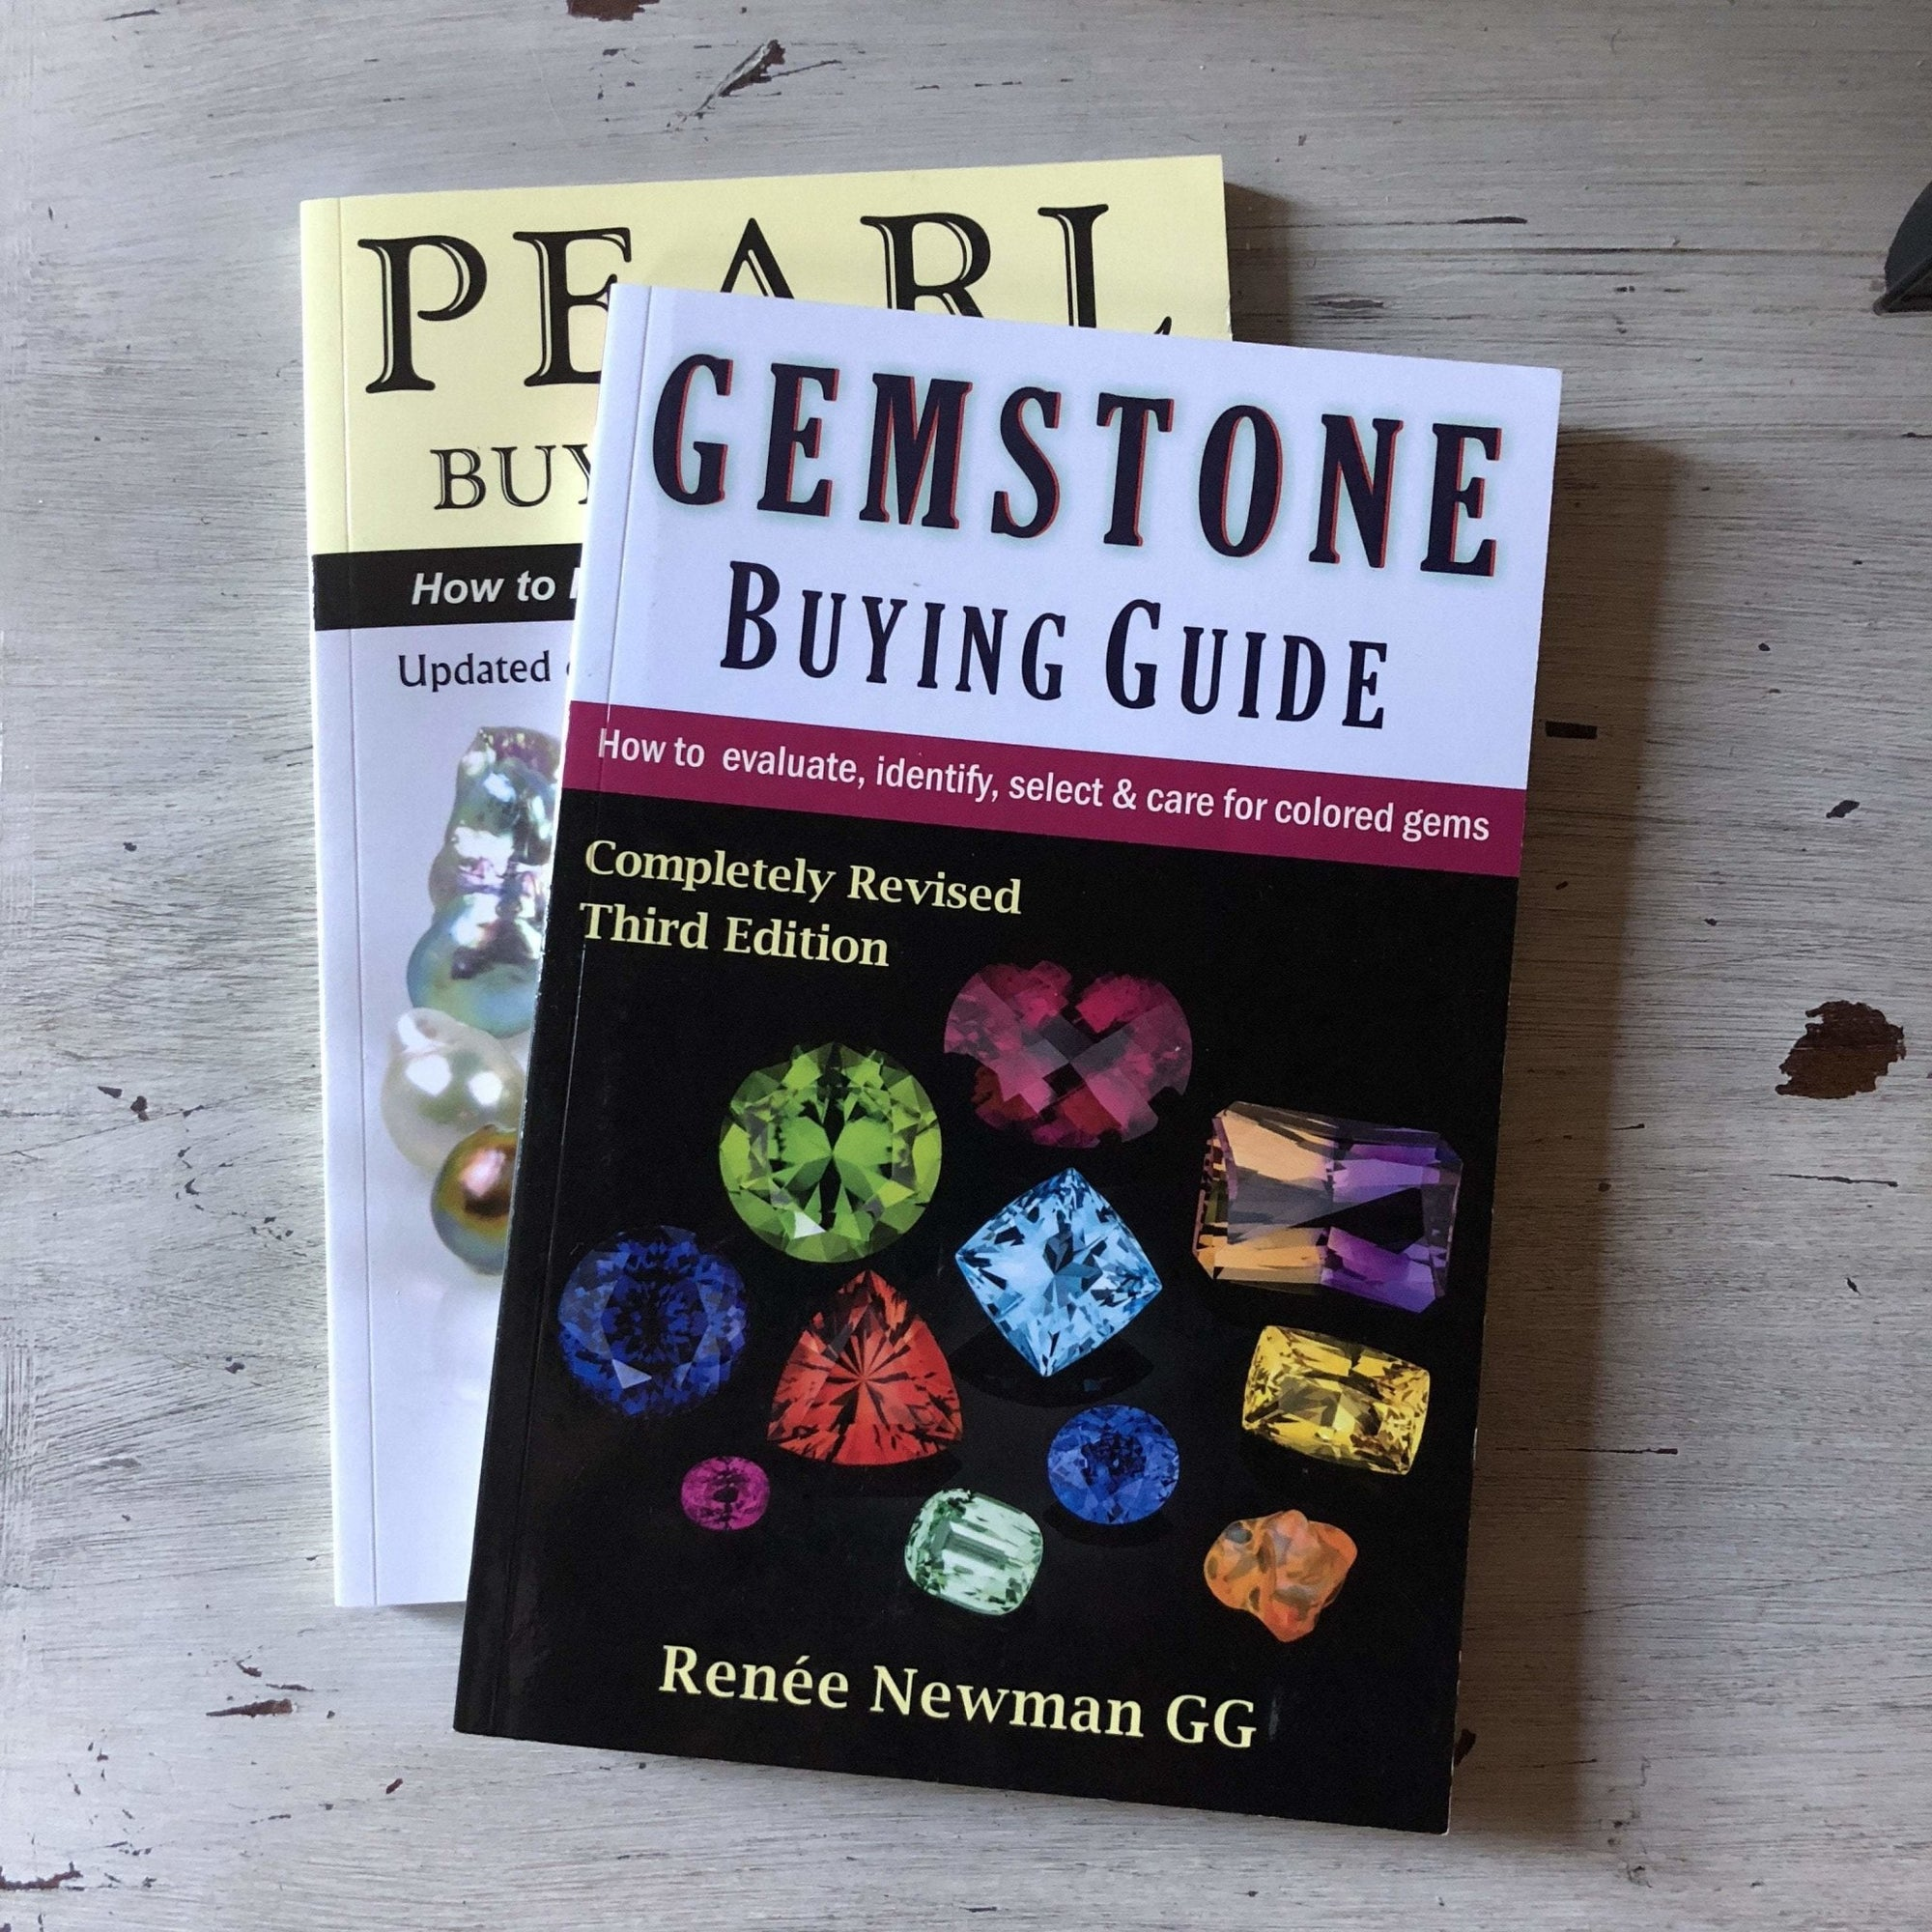 Ashleigh Branstetter Cufflinks and Earrings Featured in Gemstone and Pearl Buying Guides | Ashleigh Branstetter®